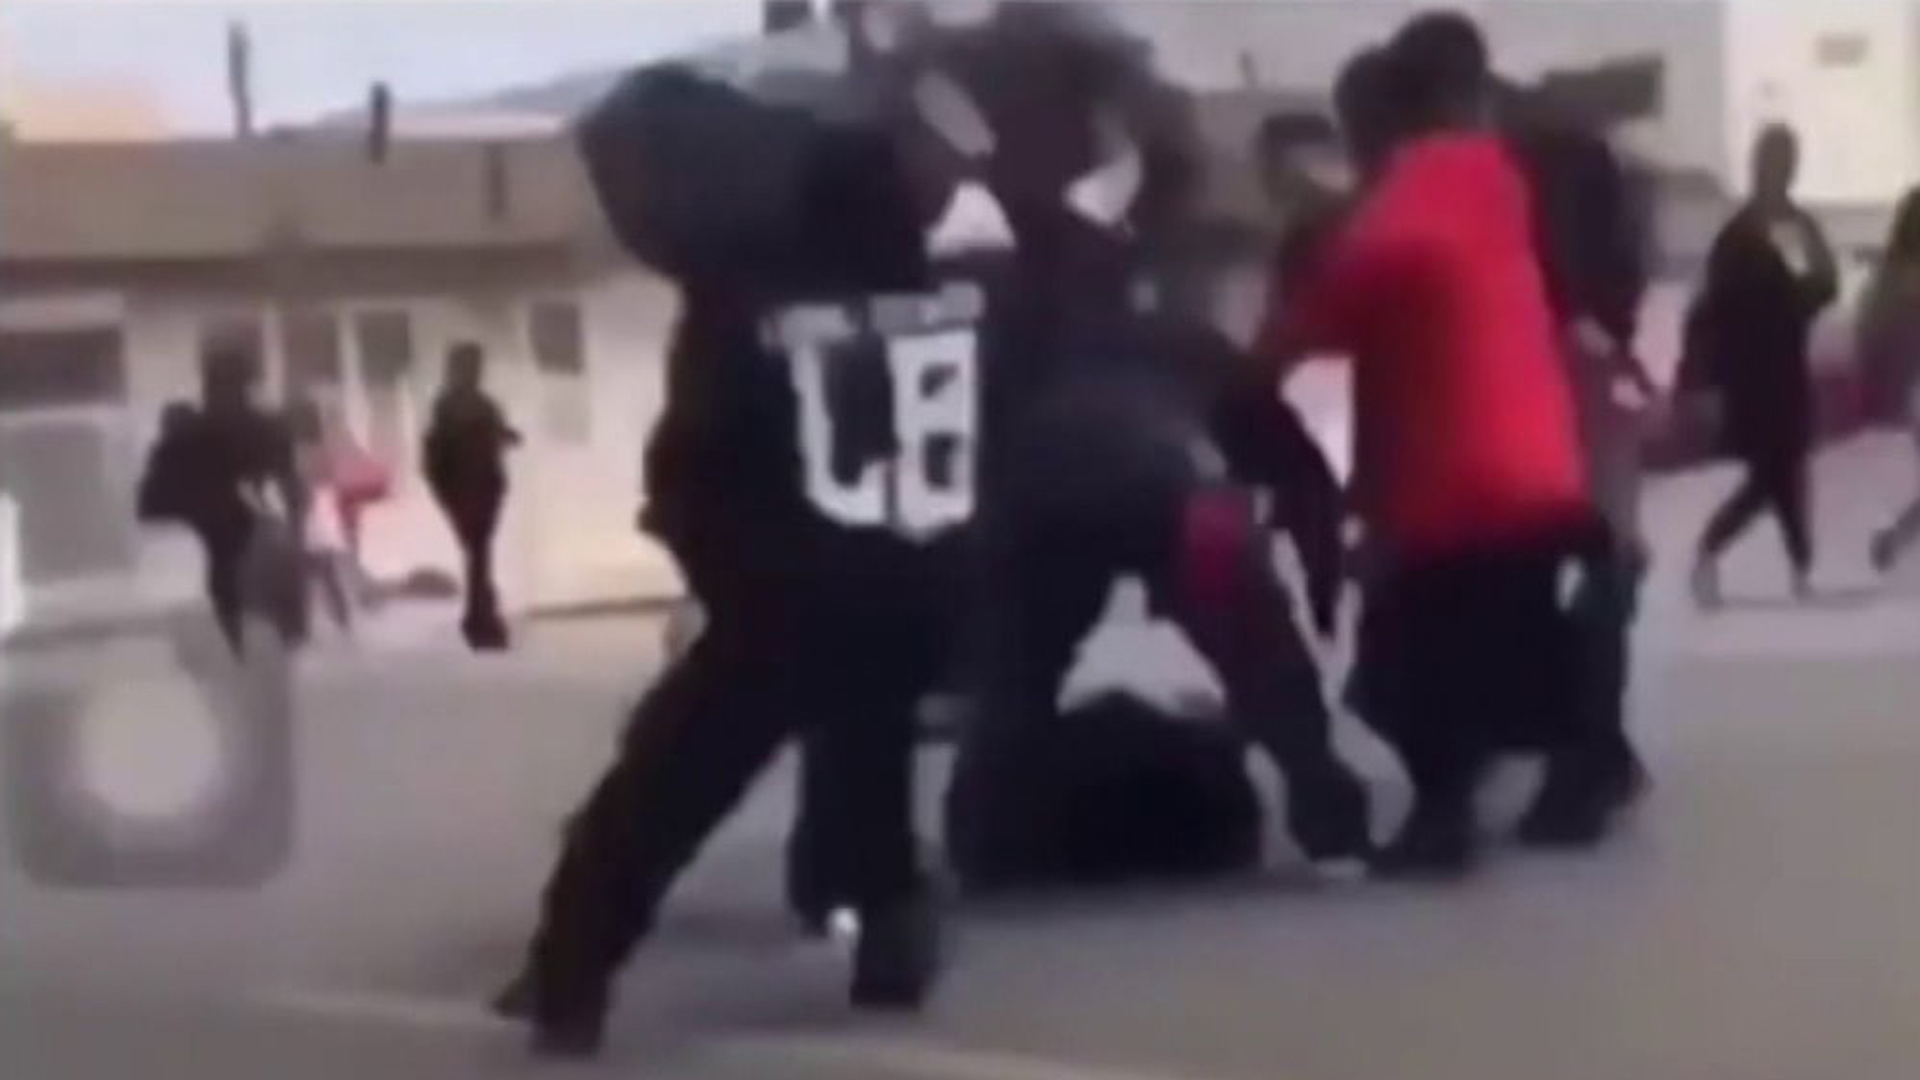 A still from cellphone video shows a student being attacked by others outside a high school in Long Beach.